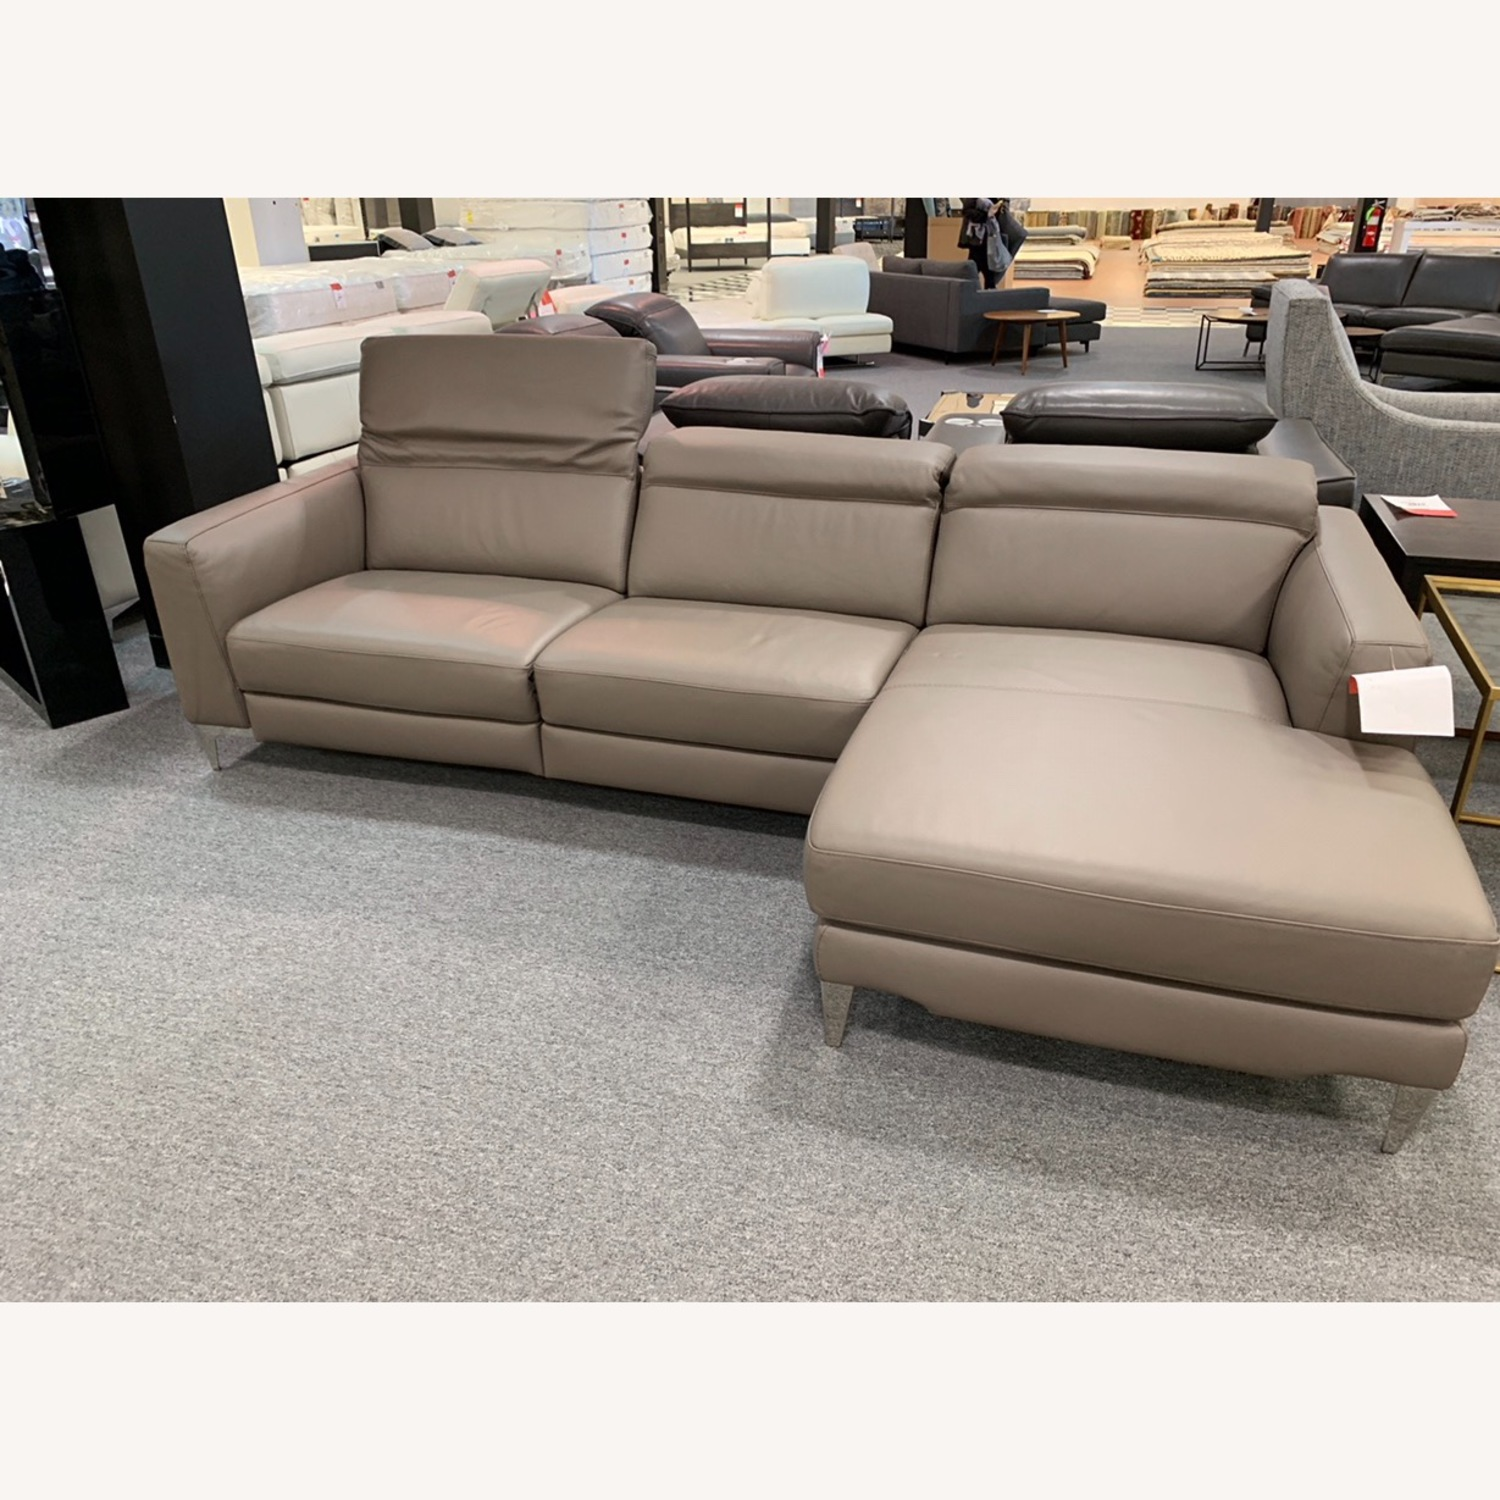 Nicoletti Vincent Leather Sectional Sofa - image-1